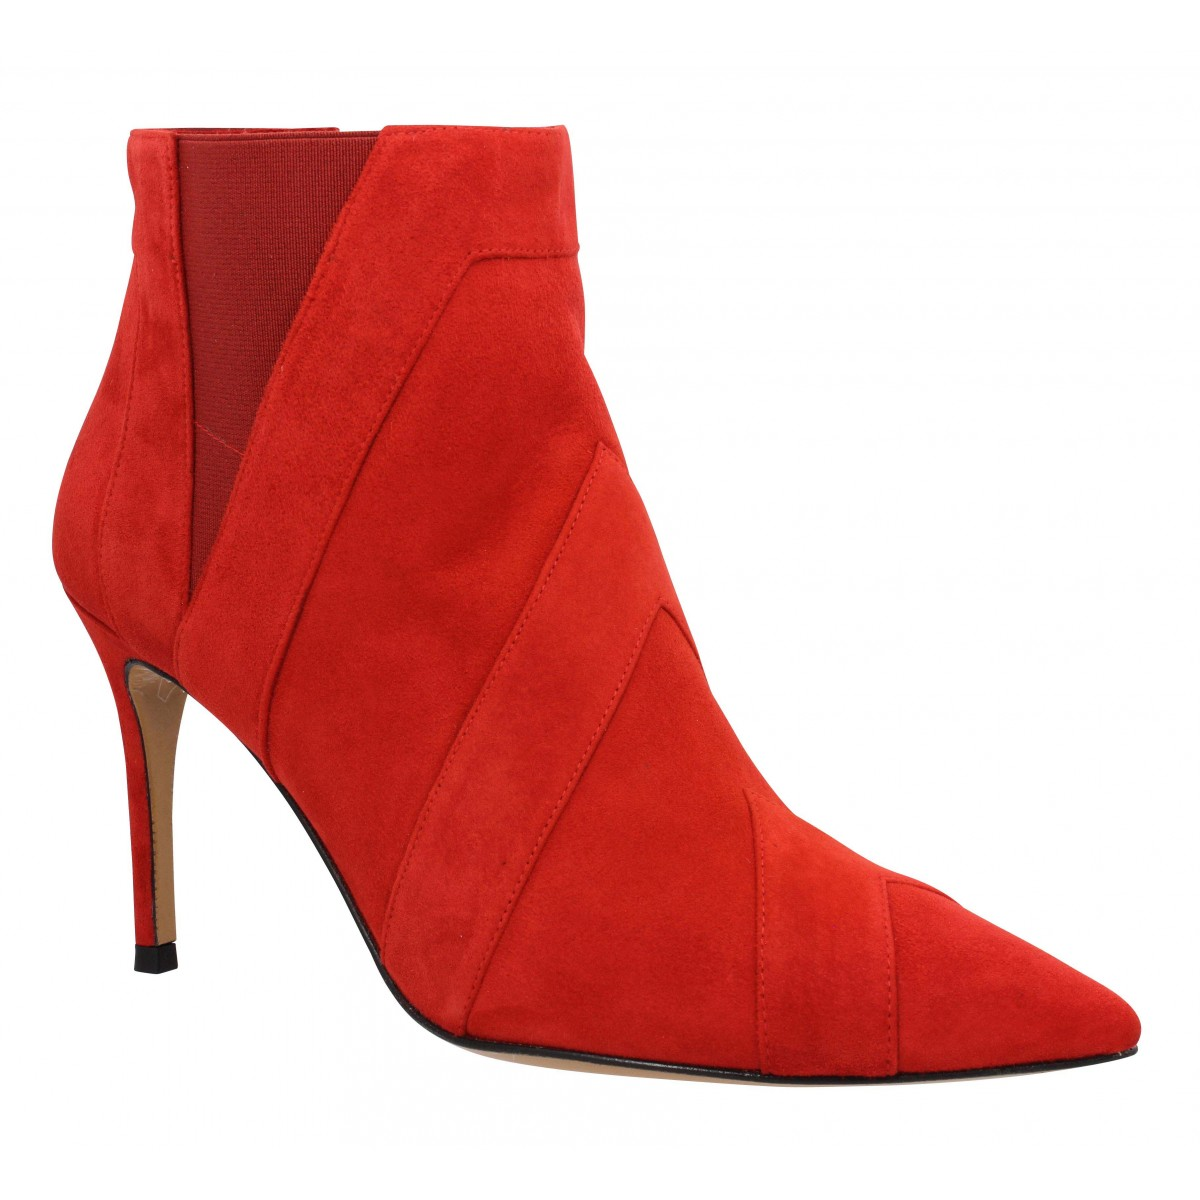 Bottines PURA LOPEZ AN117 velours Femme Rouge